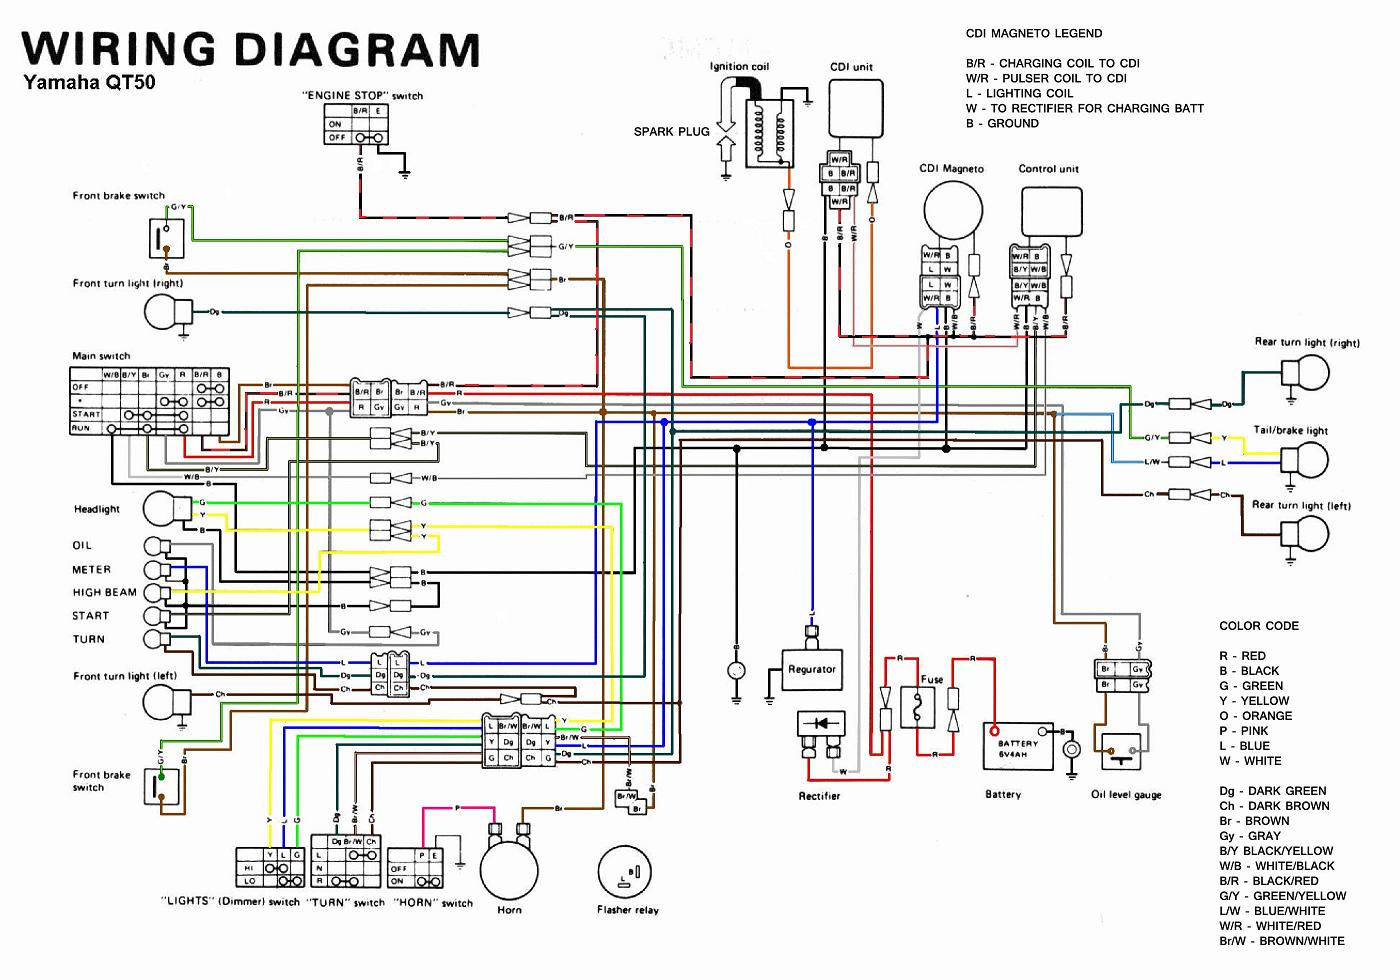 Kawasaki Wiring Harness Diagram Data Bayou 220 Manual 50 Diagrams Schema